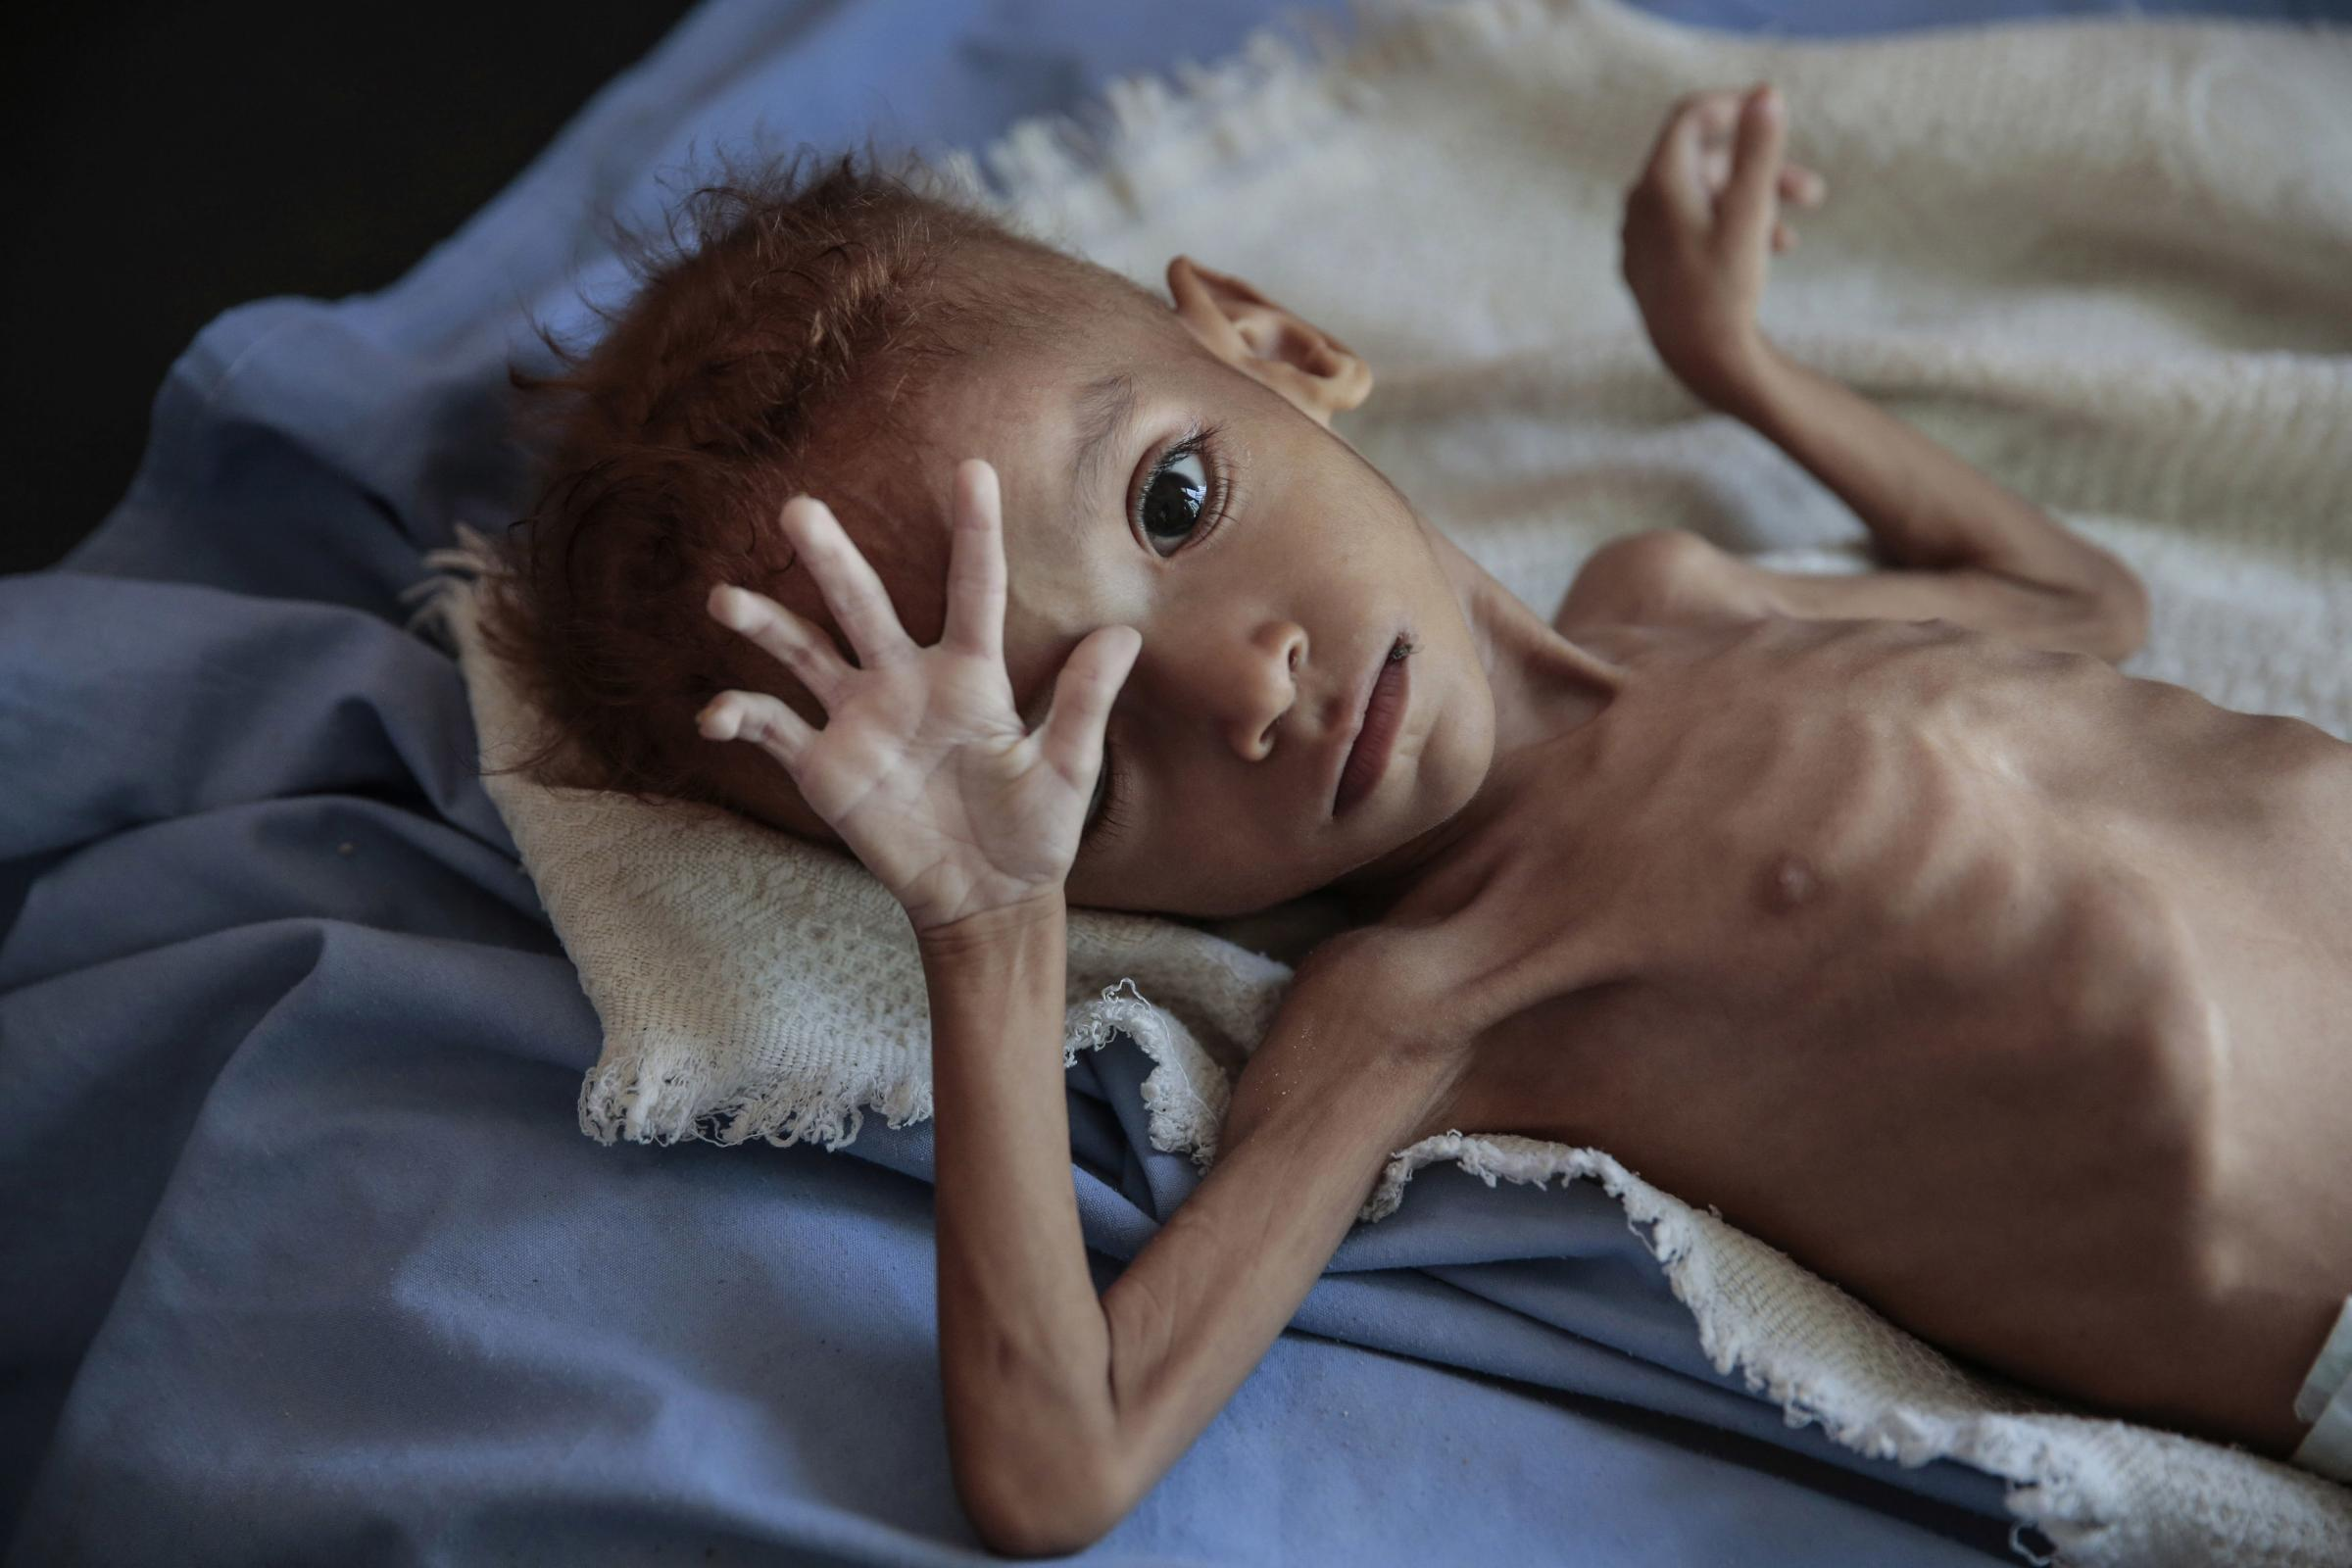 The joint statement says 14m people in Yemen are at risk of starving to death